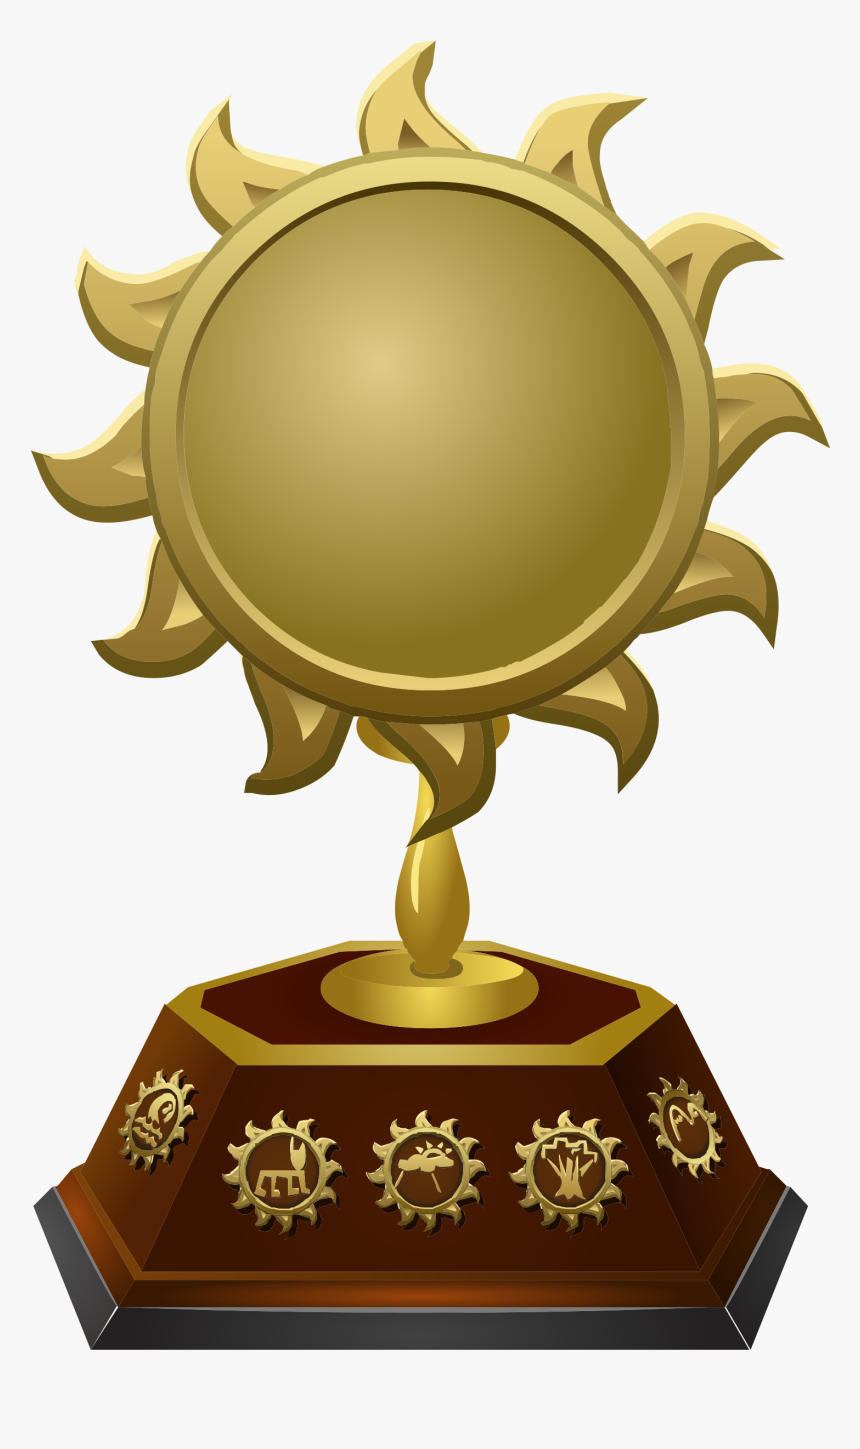 Golden Shape Star Drawing Cup Free Download Image Clipart - Trophy Emblems, HD Png Download, Free Download